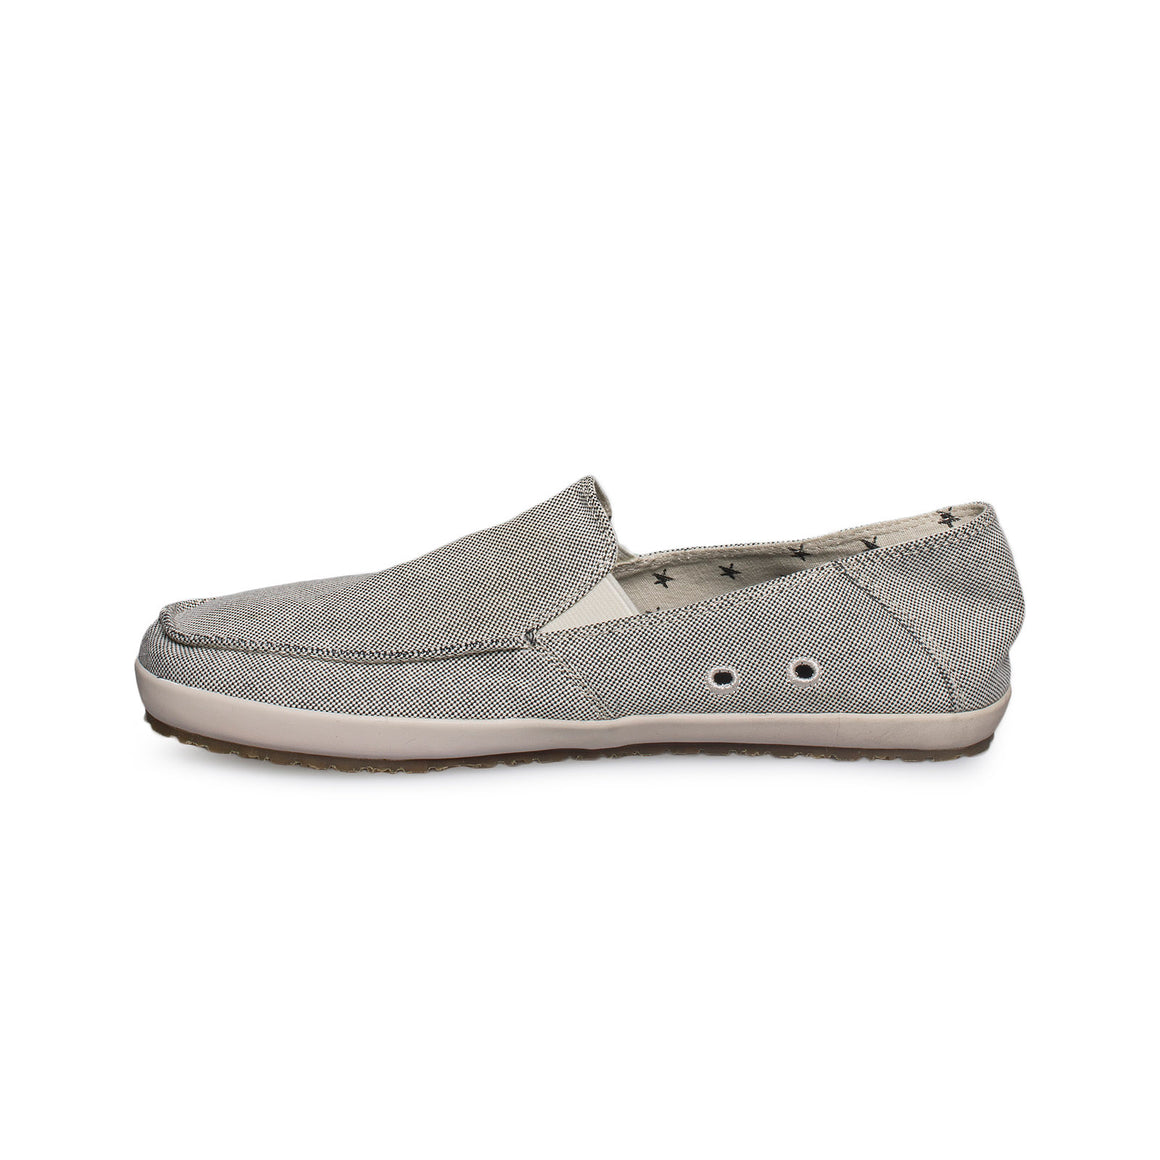 Sanuk Randolph Natural Shoes - Men's